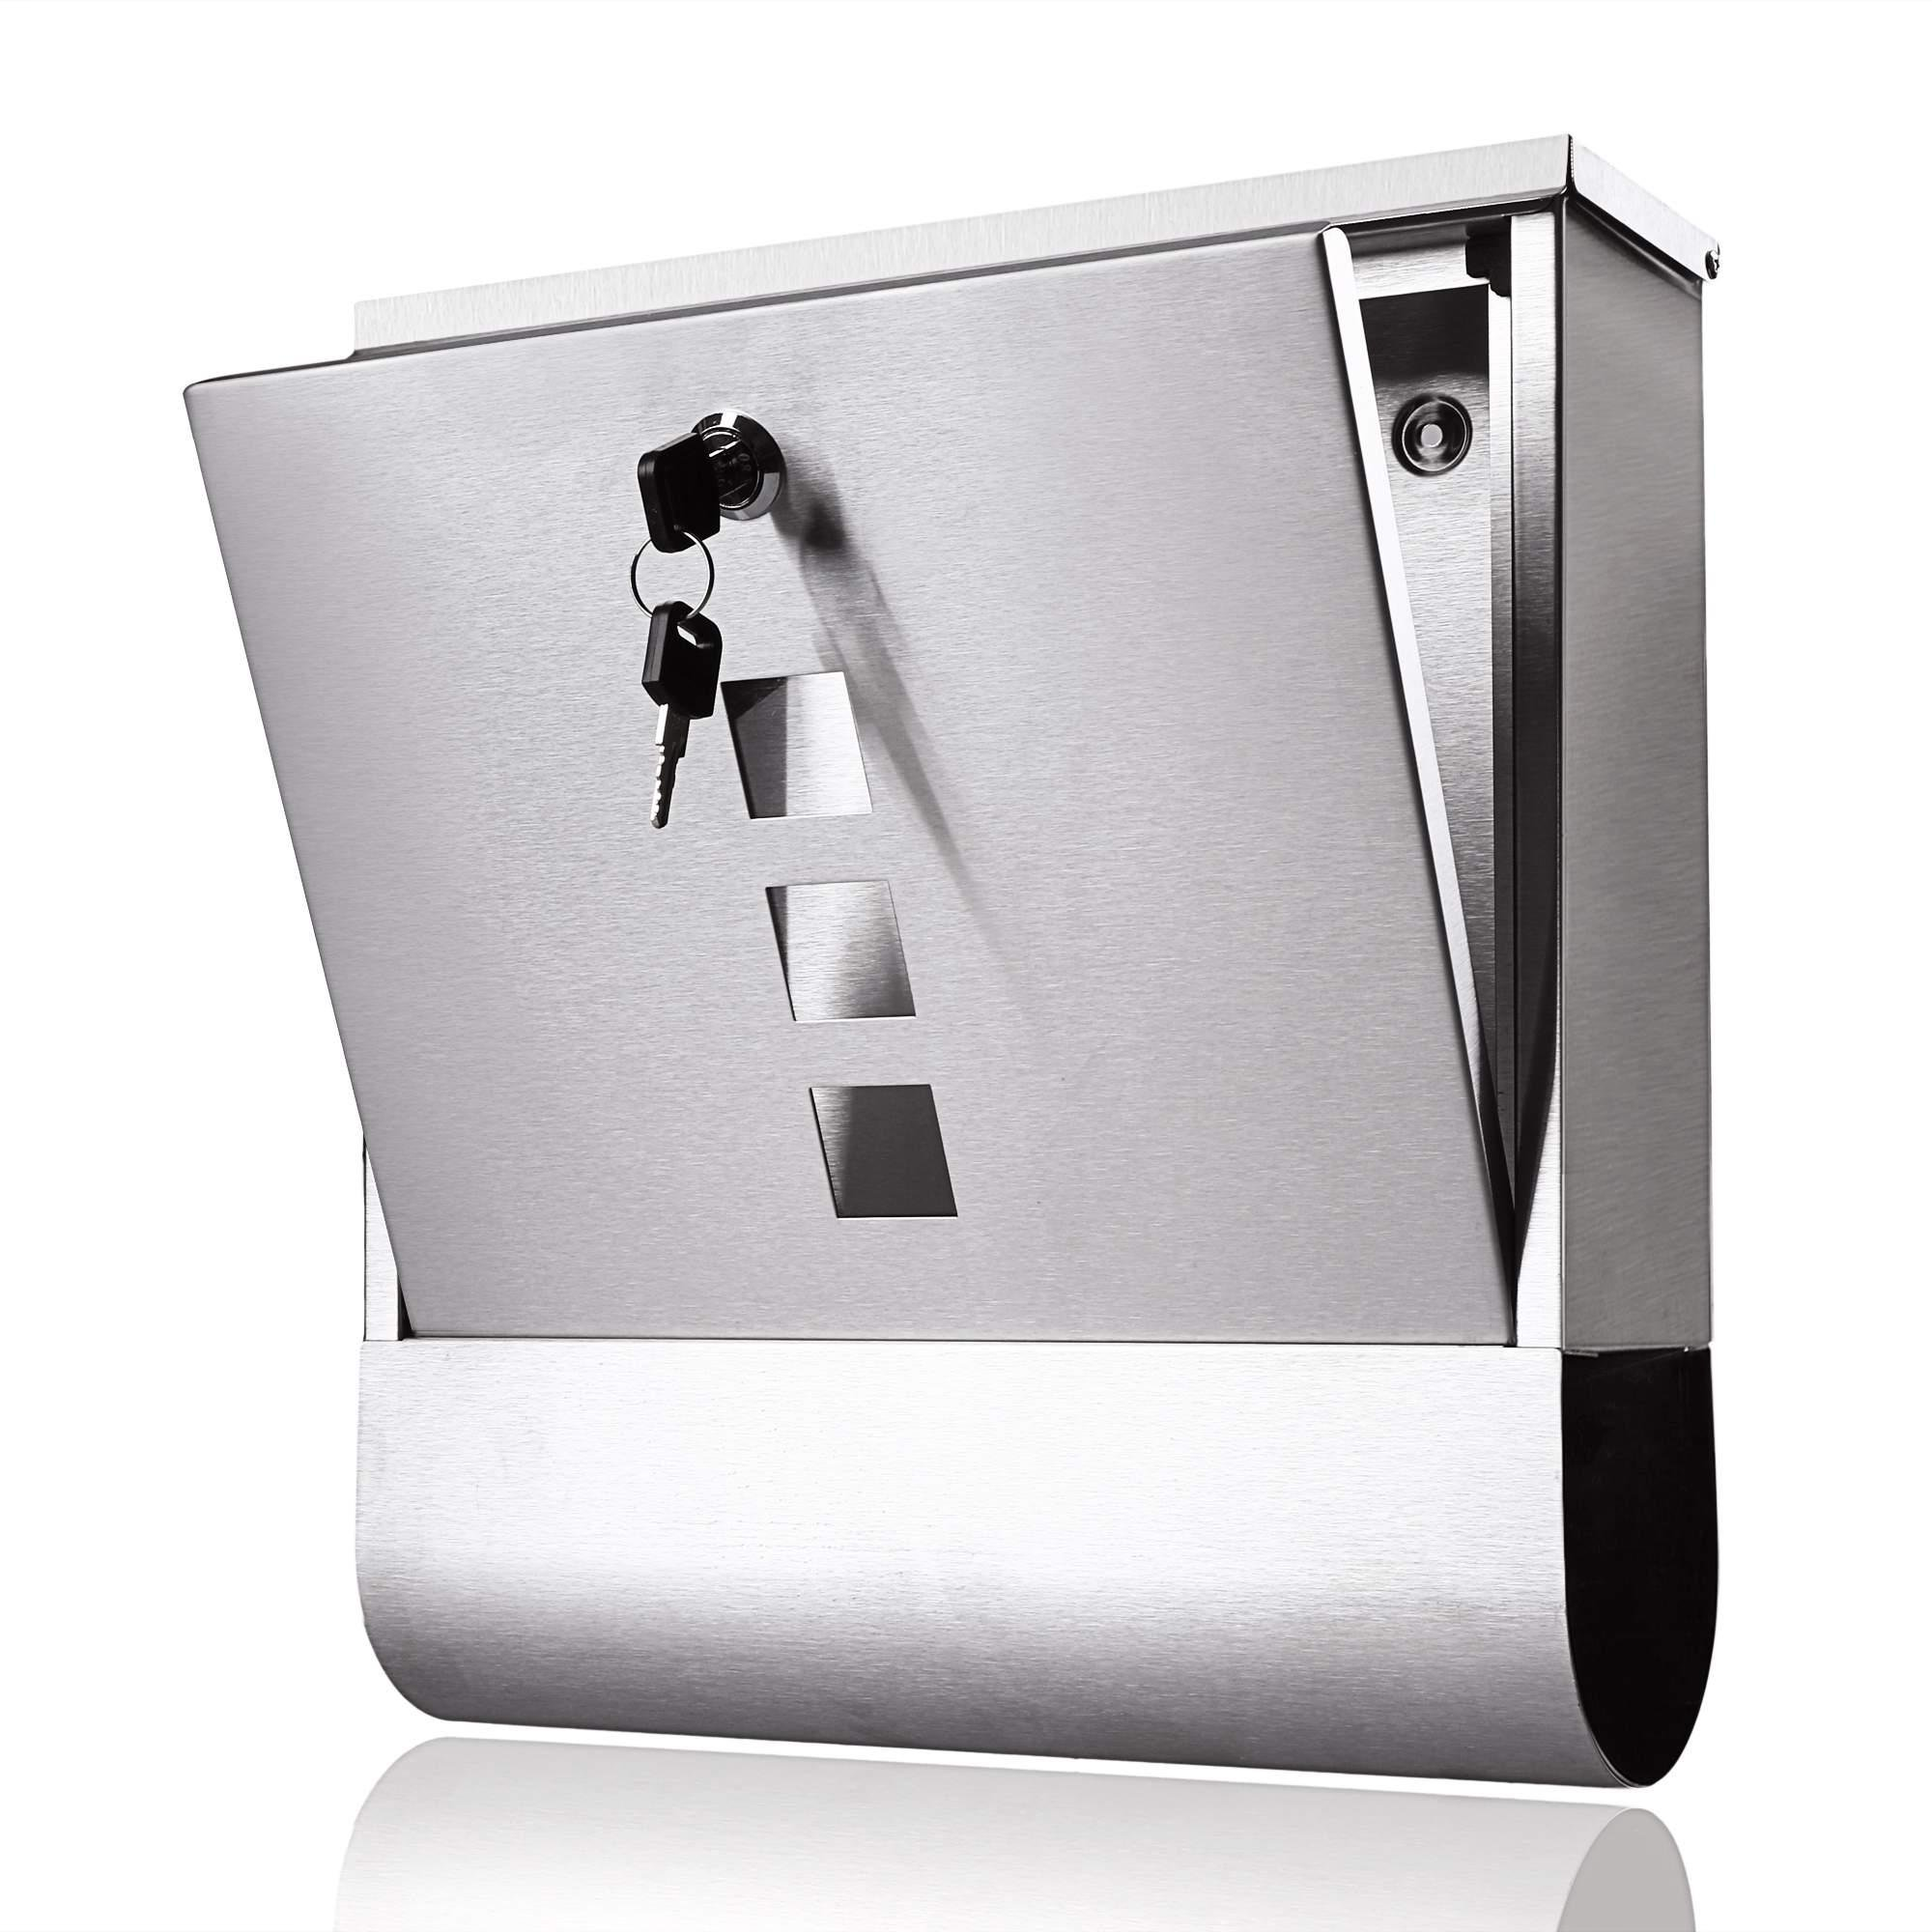 Stainless Steel Locking Mailbox Wall Mounted Letterbox [US Stock] by Rateim (Image #2)